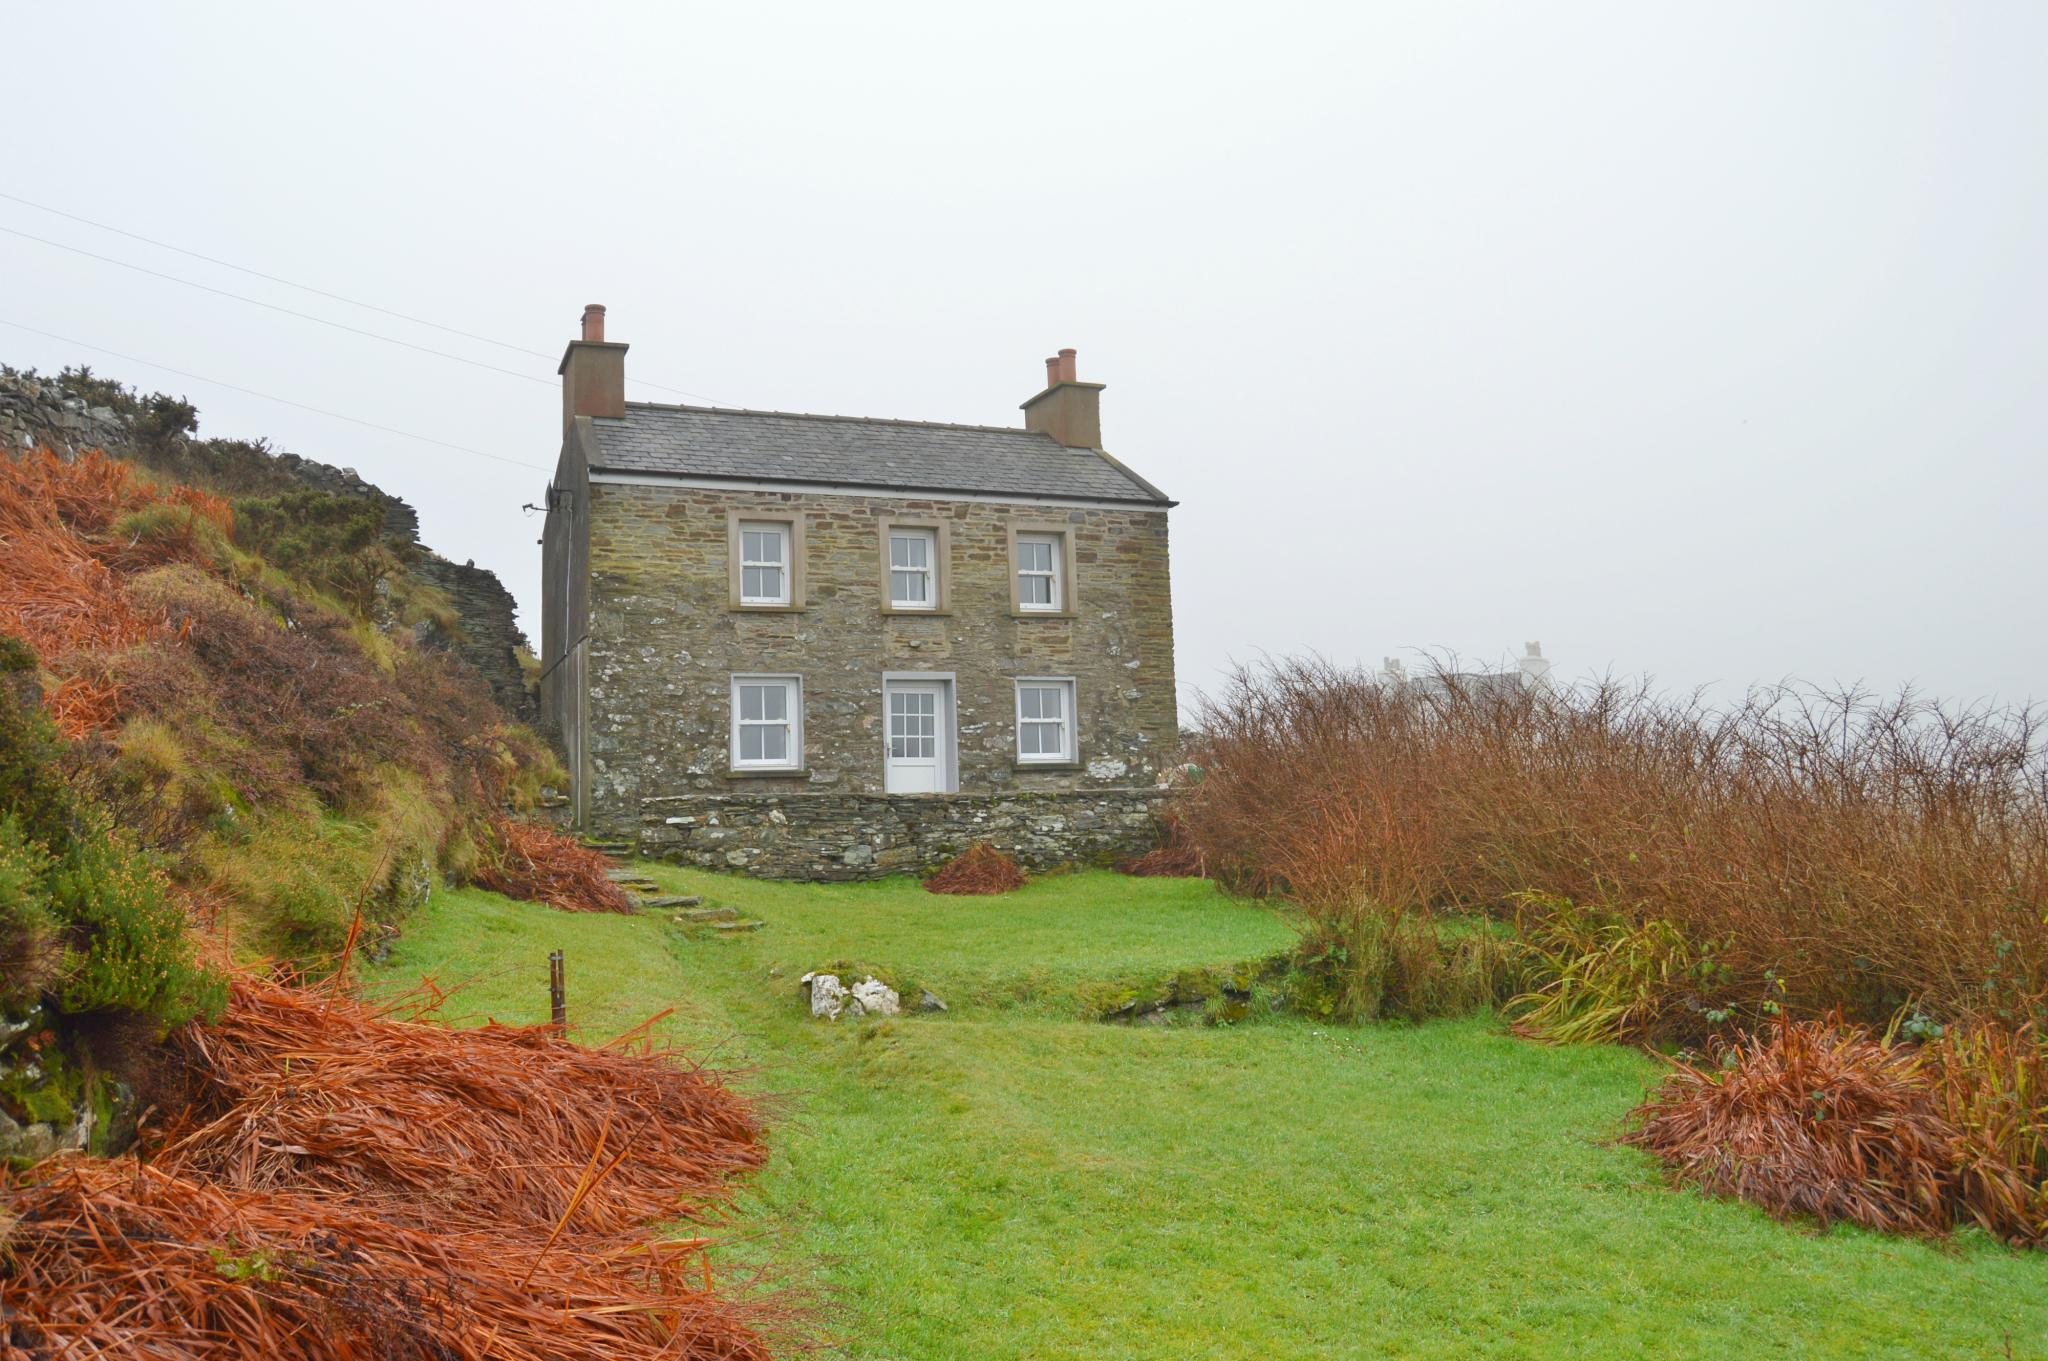 3 bedroom detached house Let Agreed in Port Erin - Photograph 1